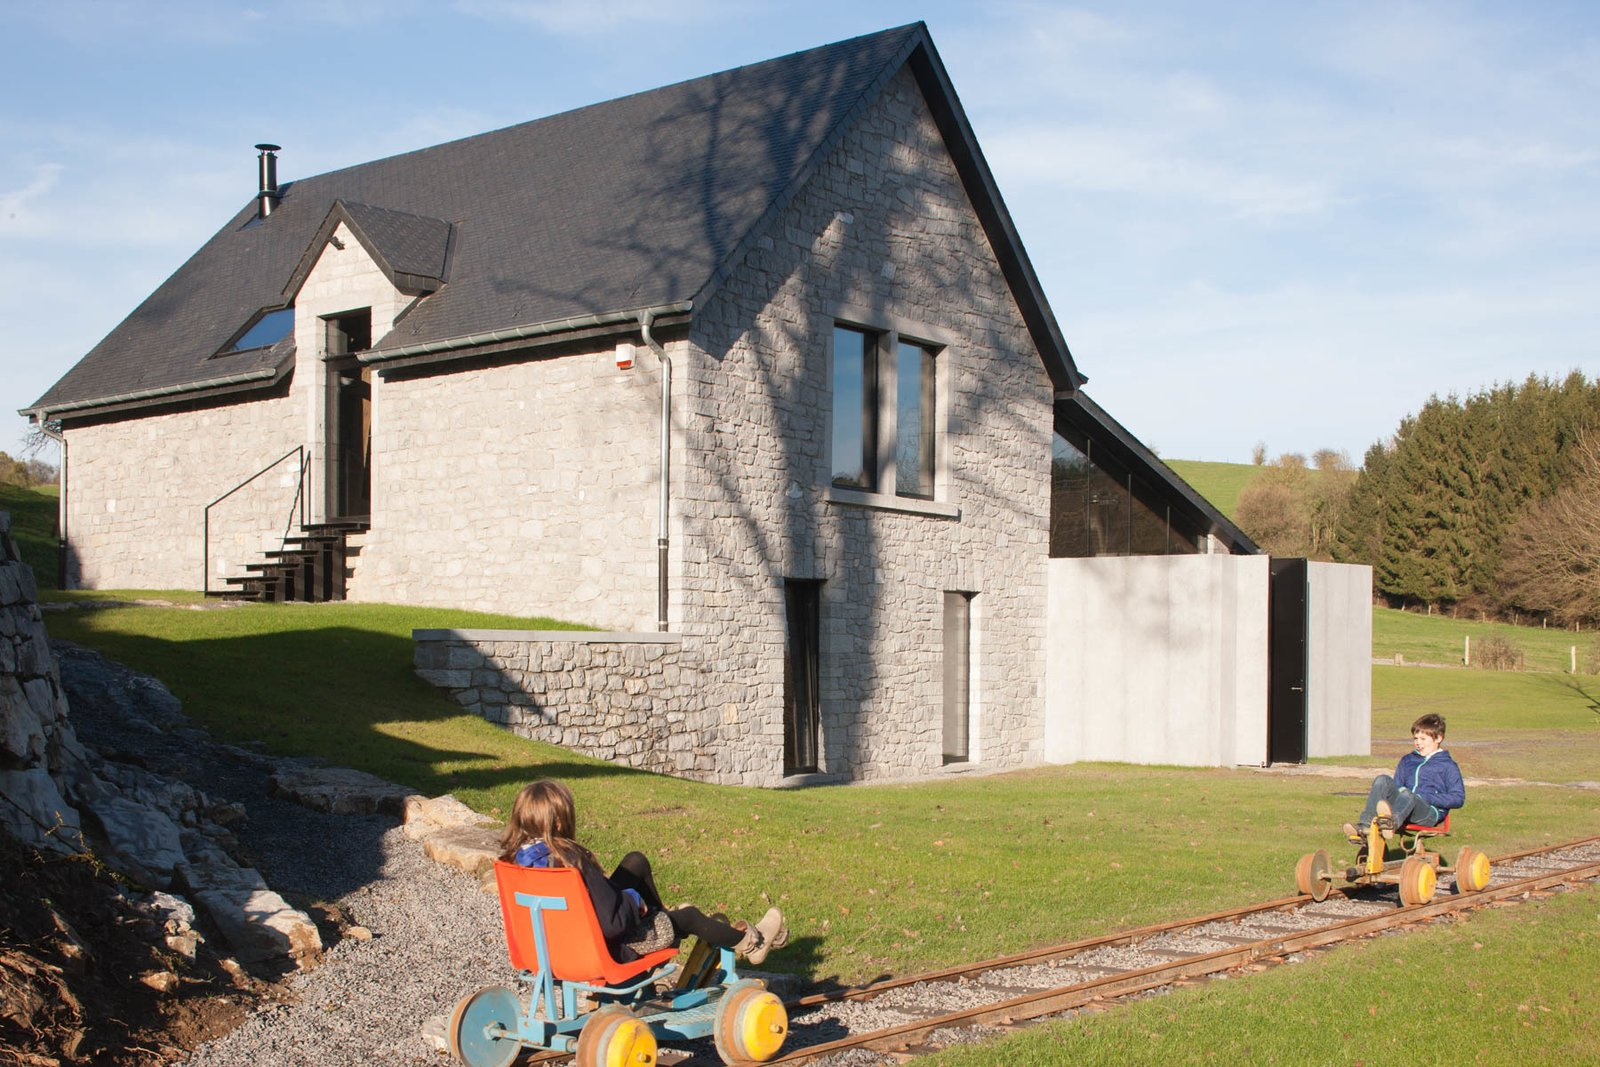 Exterior, Tile Roof Material, Stone Siding Material, House Building Type, Glass Siding Material, Gable RoofLine, Concrete Siding Material, and Cabin Building Type  Photo 3 of 16 in Stay at an Old Converted Train Station in the Belgian Countryside